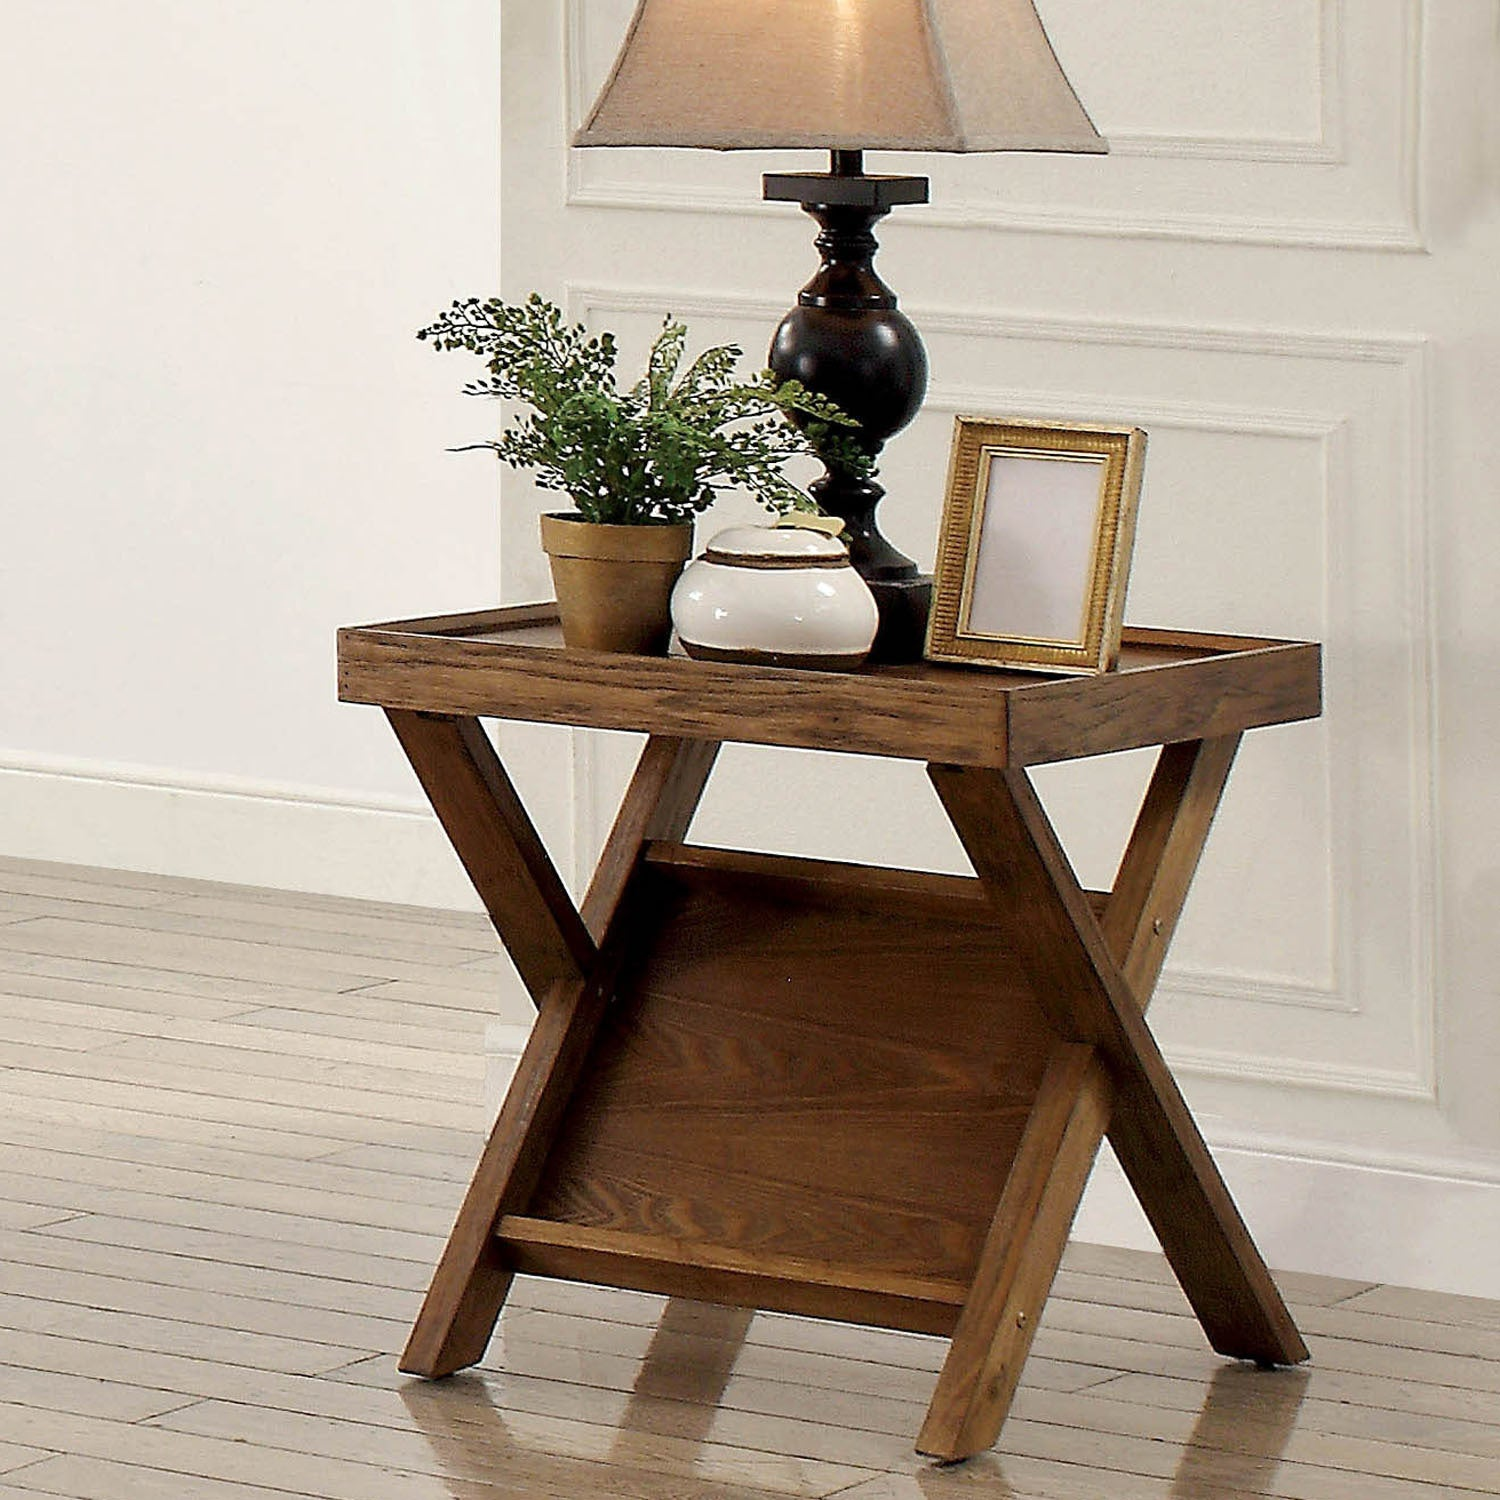 Furniture Of America Montecito Rustic Light Oak End Table With Magazine Rack Free Shipping Today 20351807